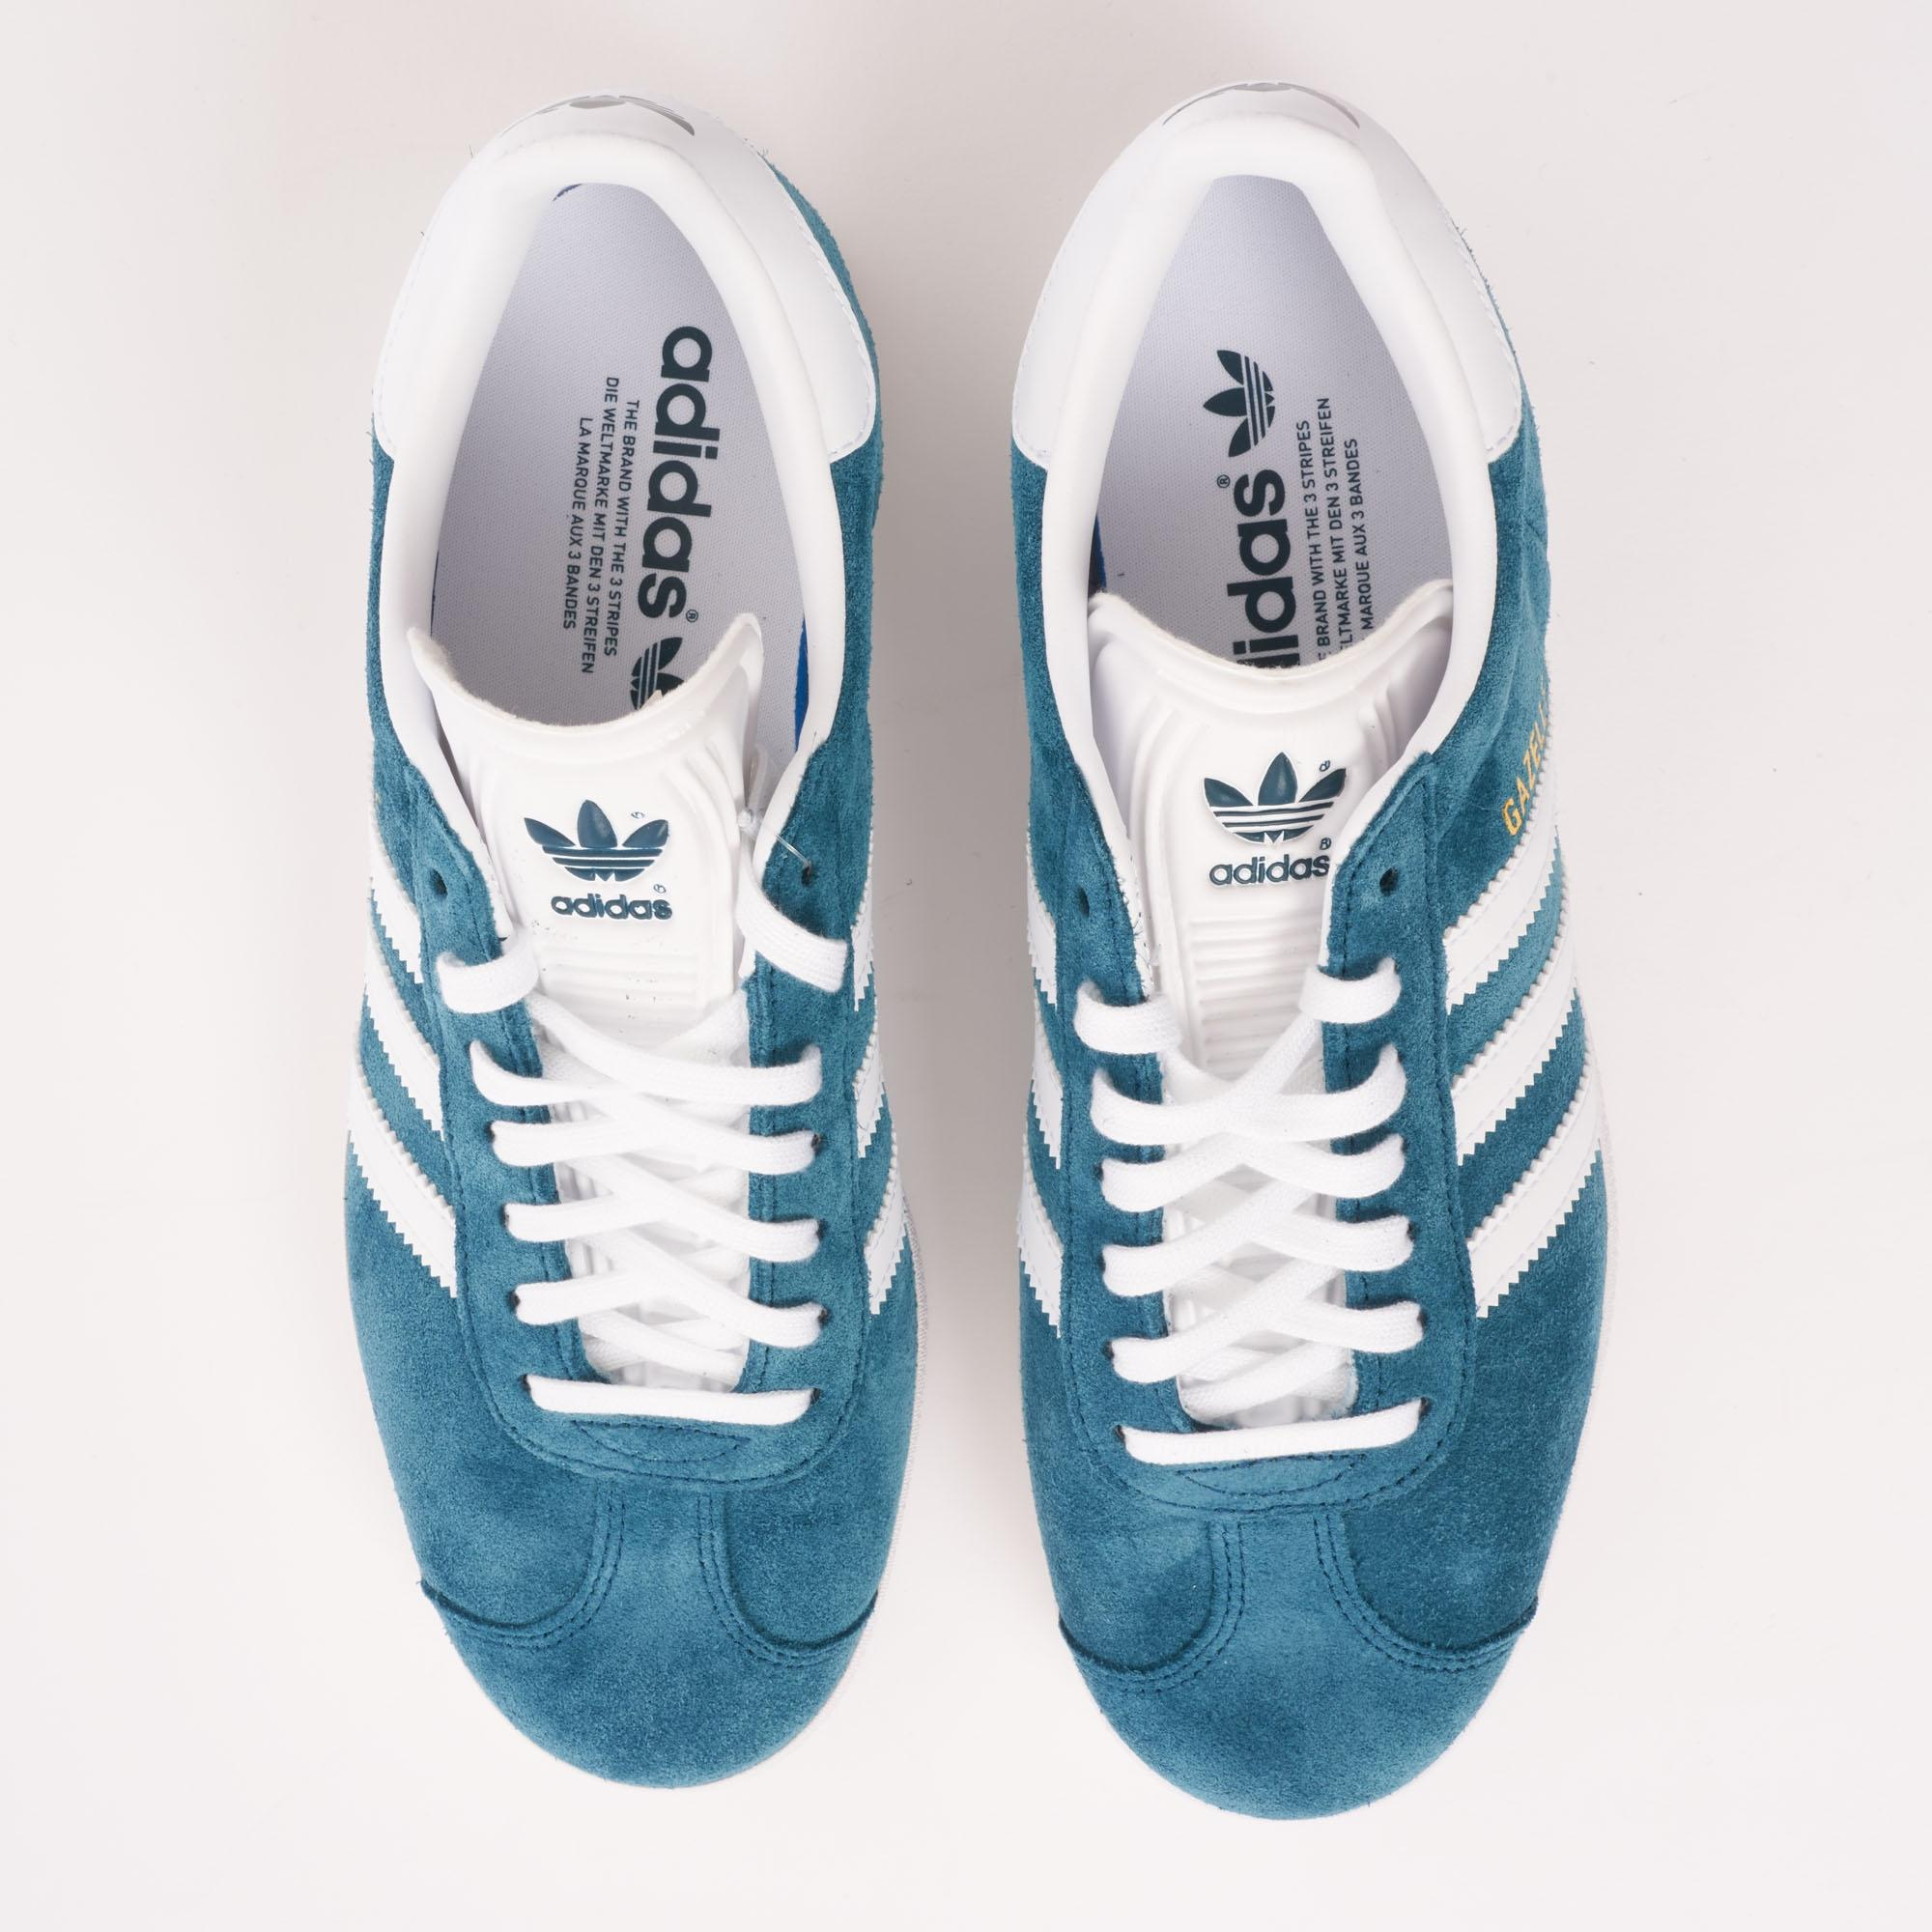 reputable site 0230d ce1e7 Lyst - adidas Originals Gazelle - Petrol Night  Ftw White in